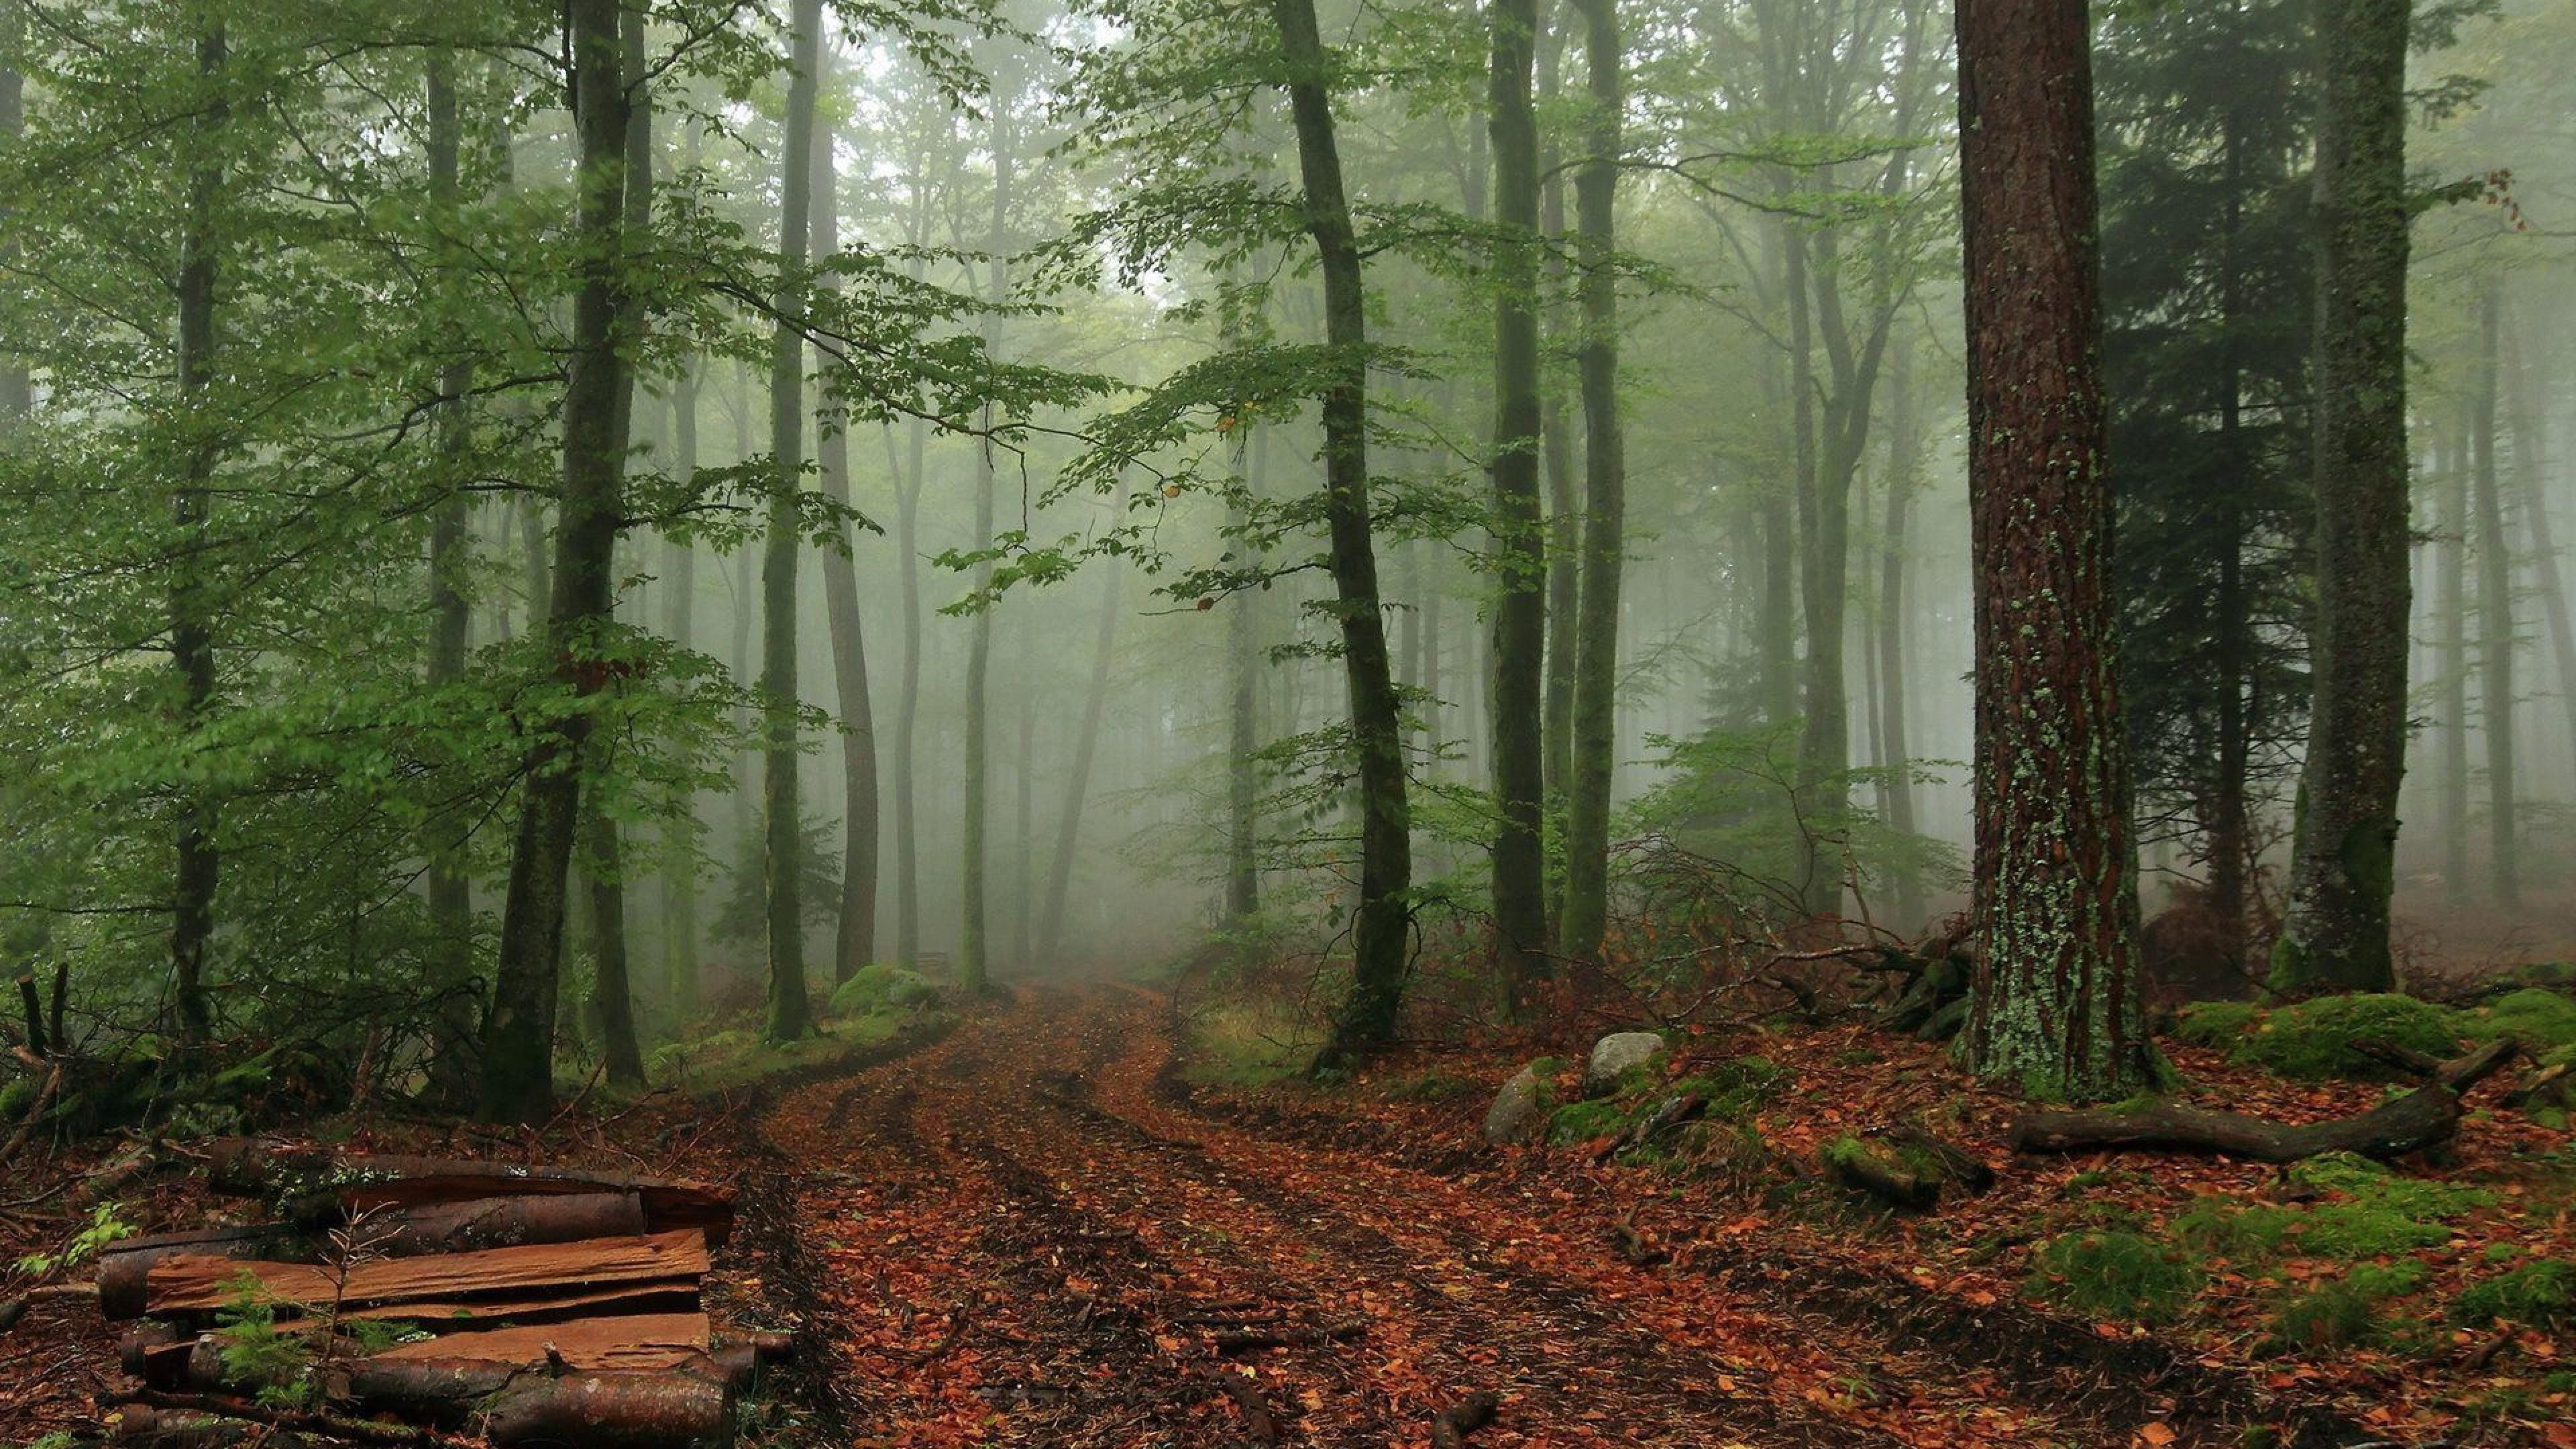 Res: 3840x2160, Foggy Forest Wallpaper Wide #5Fv